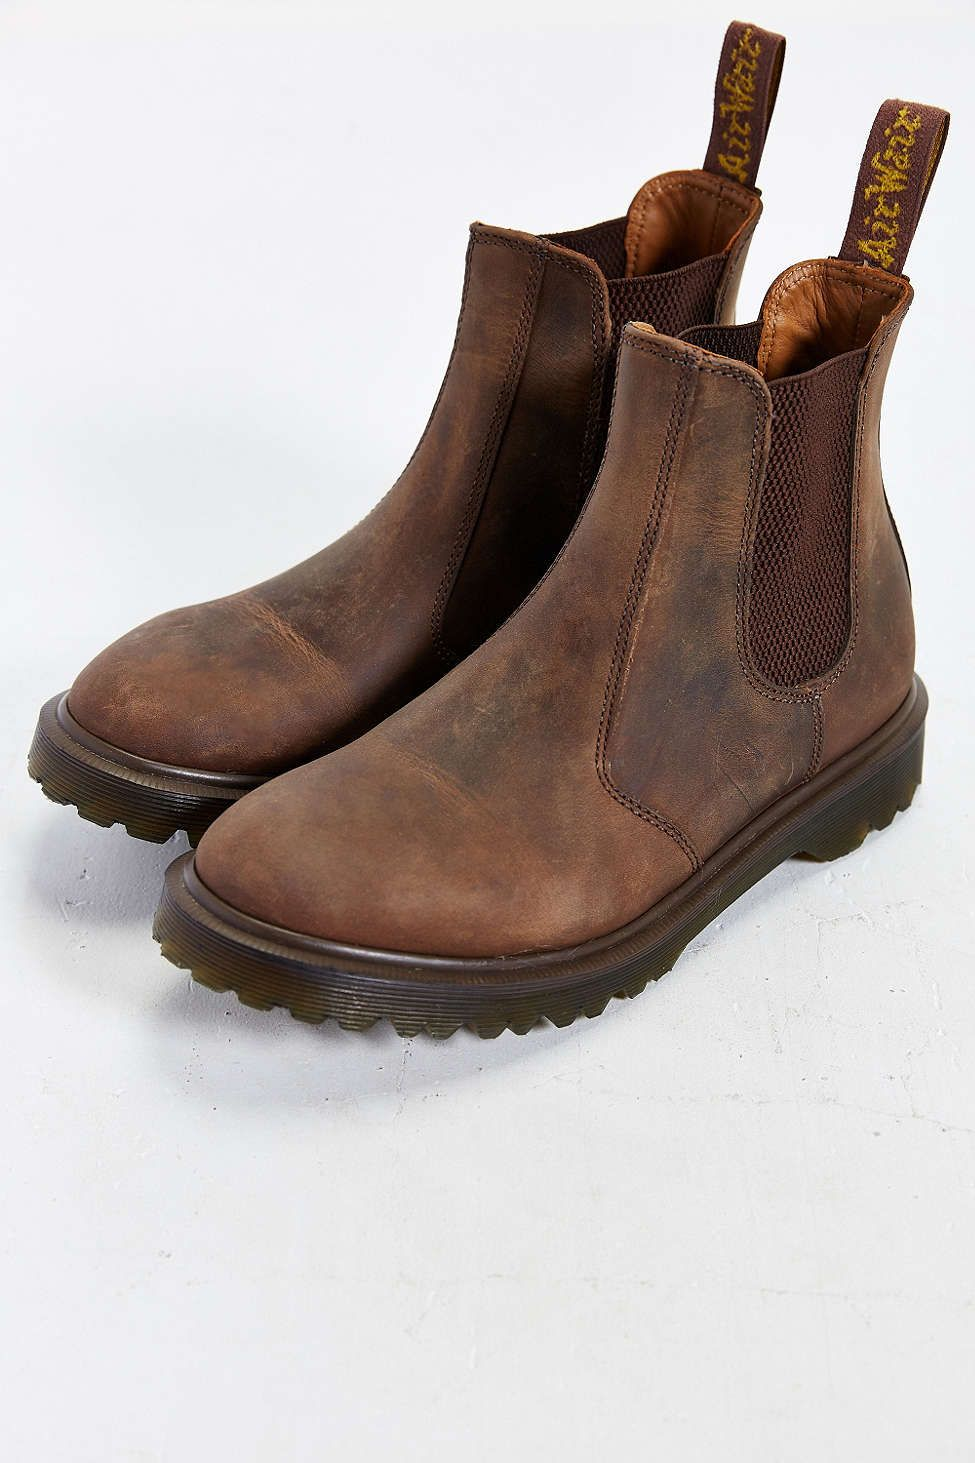 Dr Martens 2976 Milled Chelsea Boot Chelsea Boots Women Steve Madden Chelsea Boots Chelsea Boots Outfit